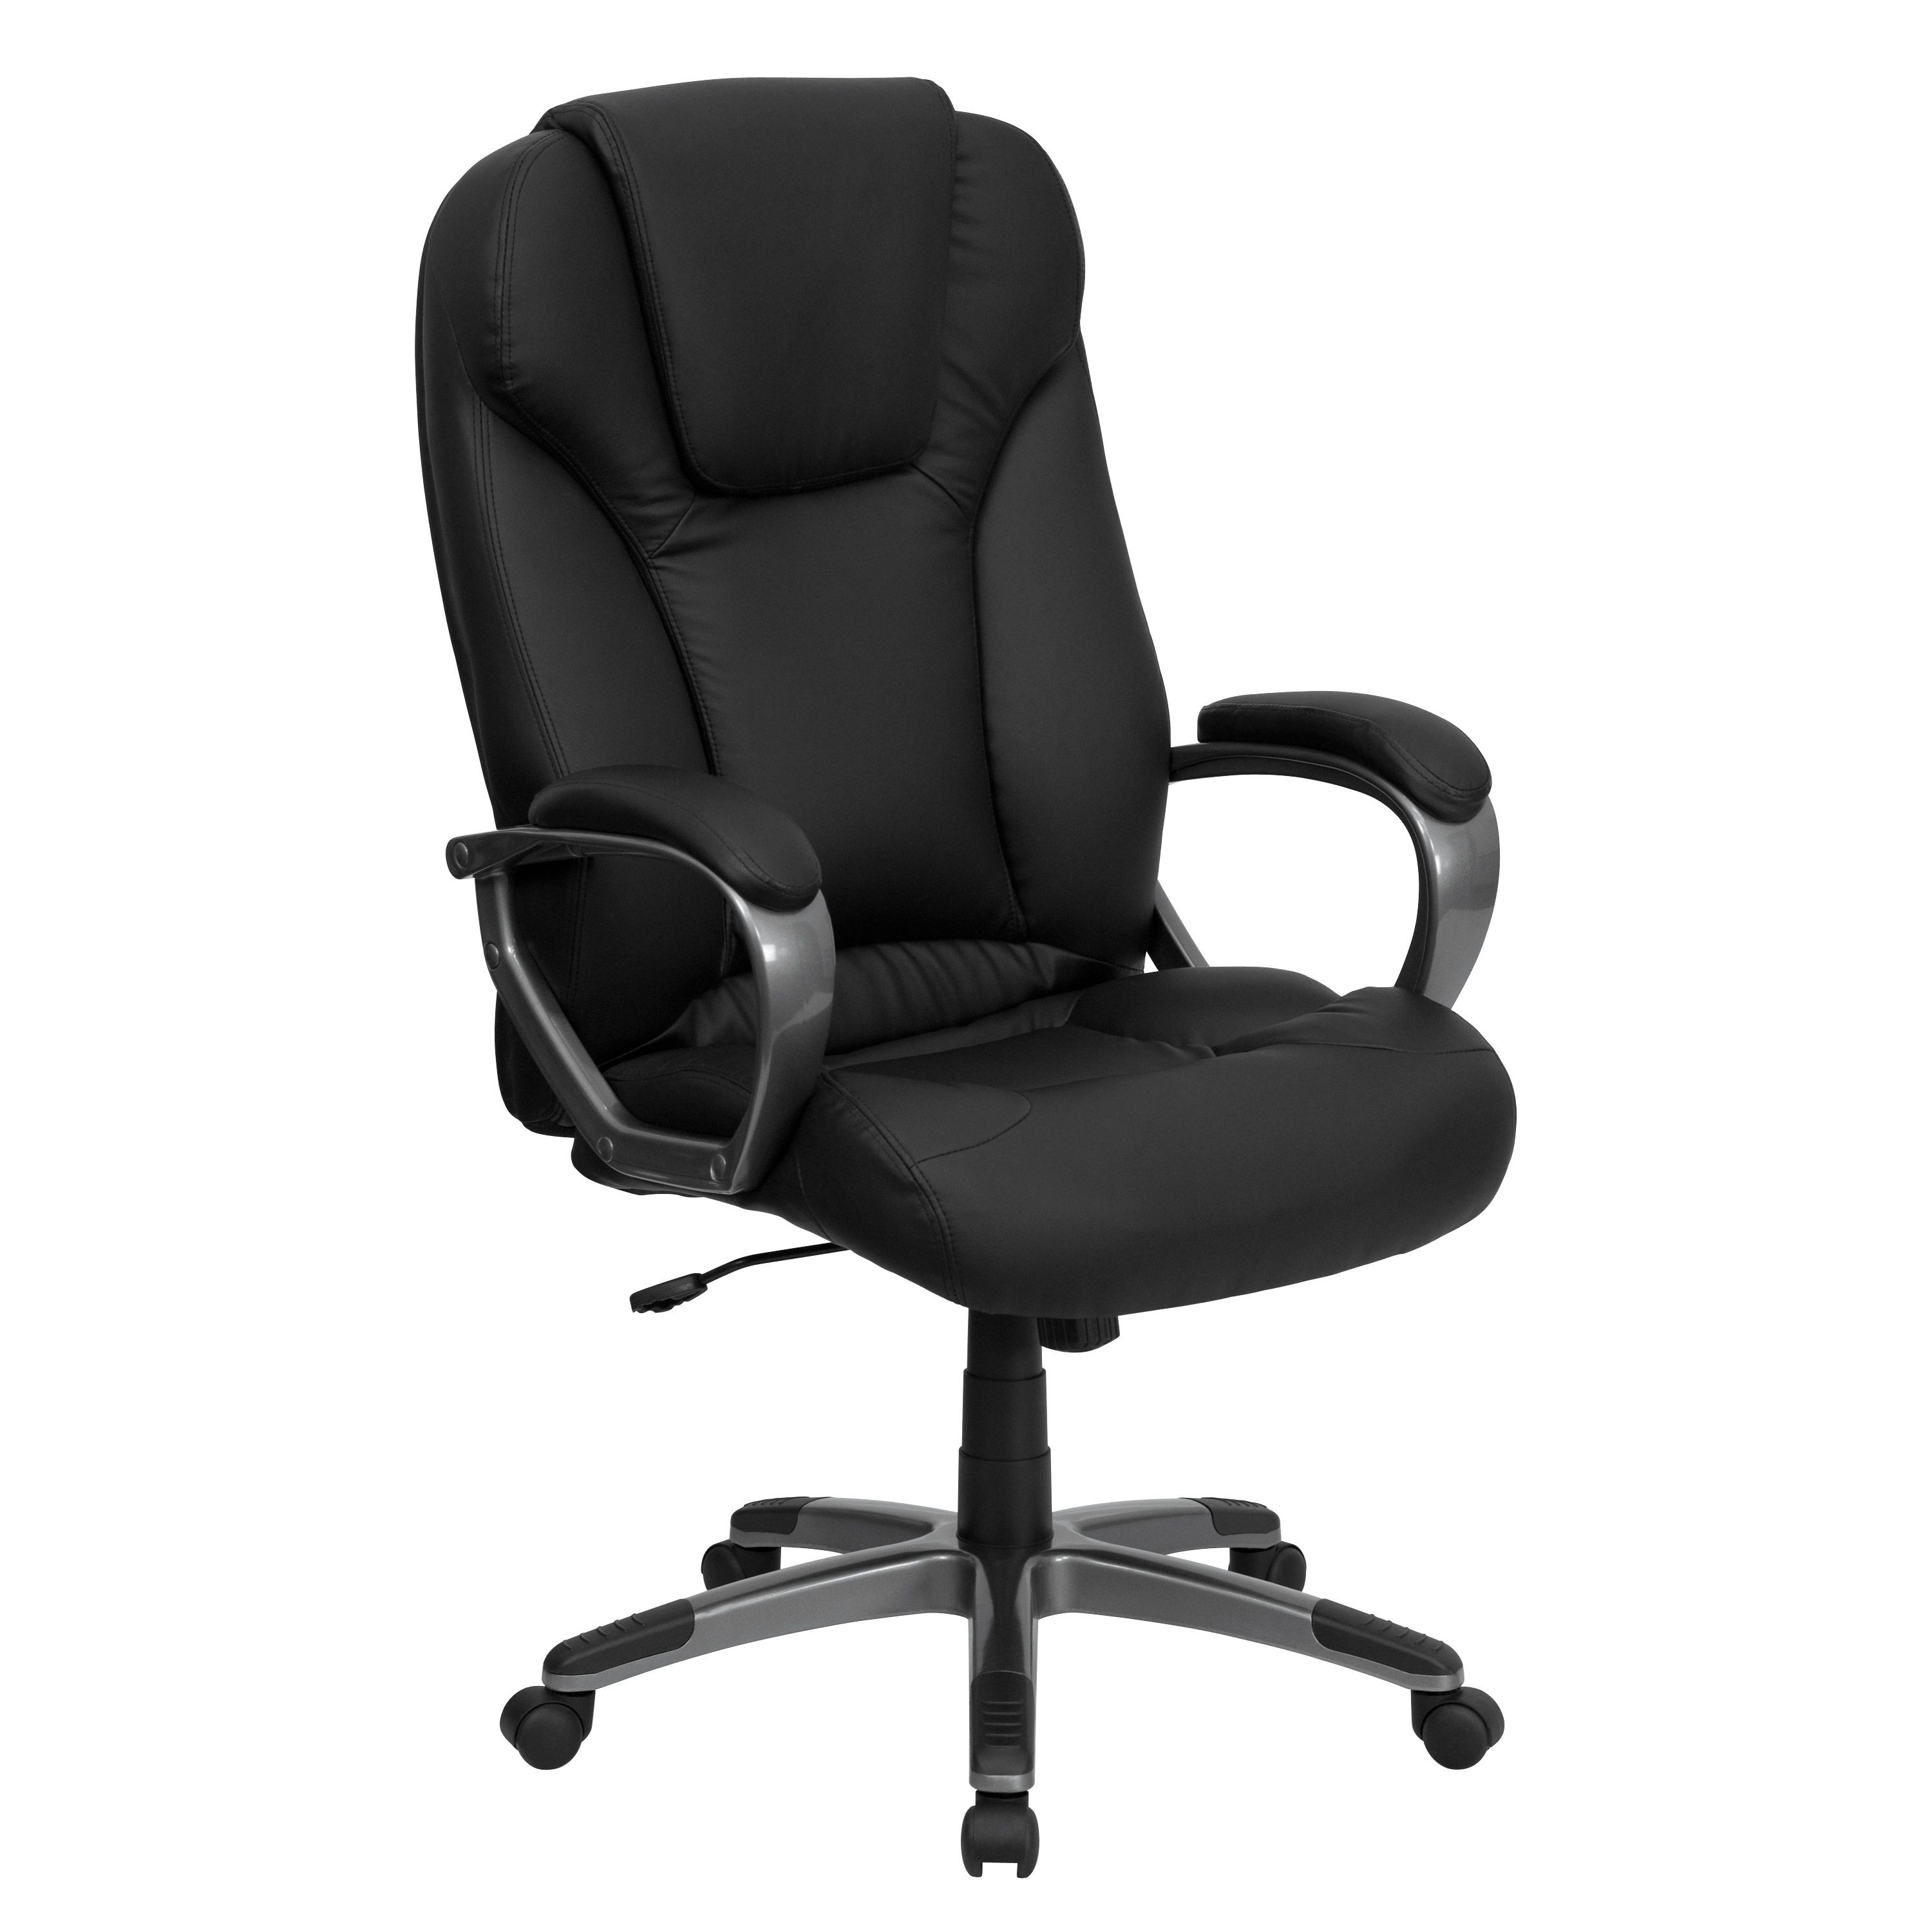 Flash Furniture BT-9066-BK-GG Black Leather High Back Executive Office Chair- Arm Rest